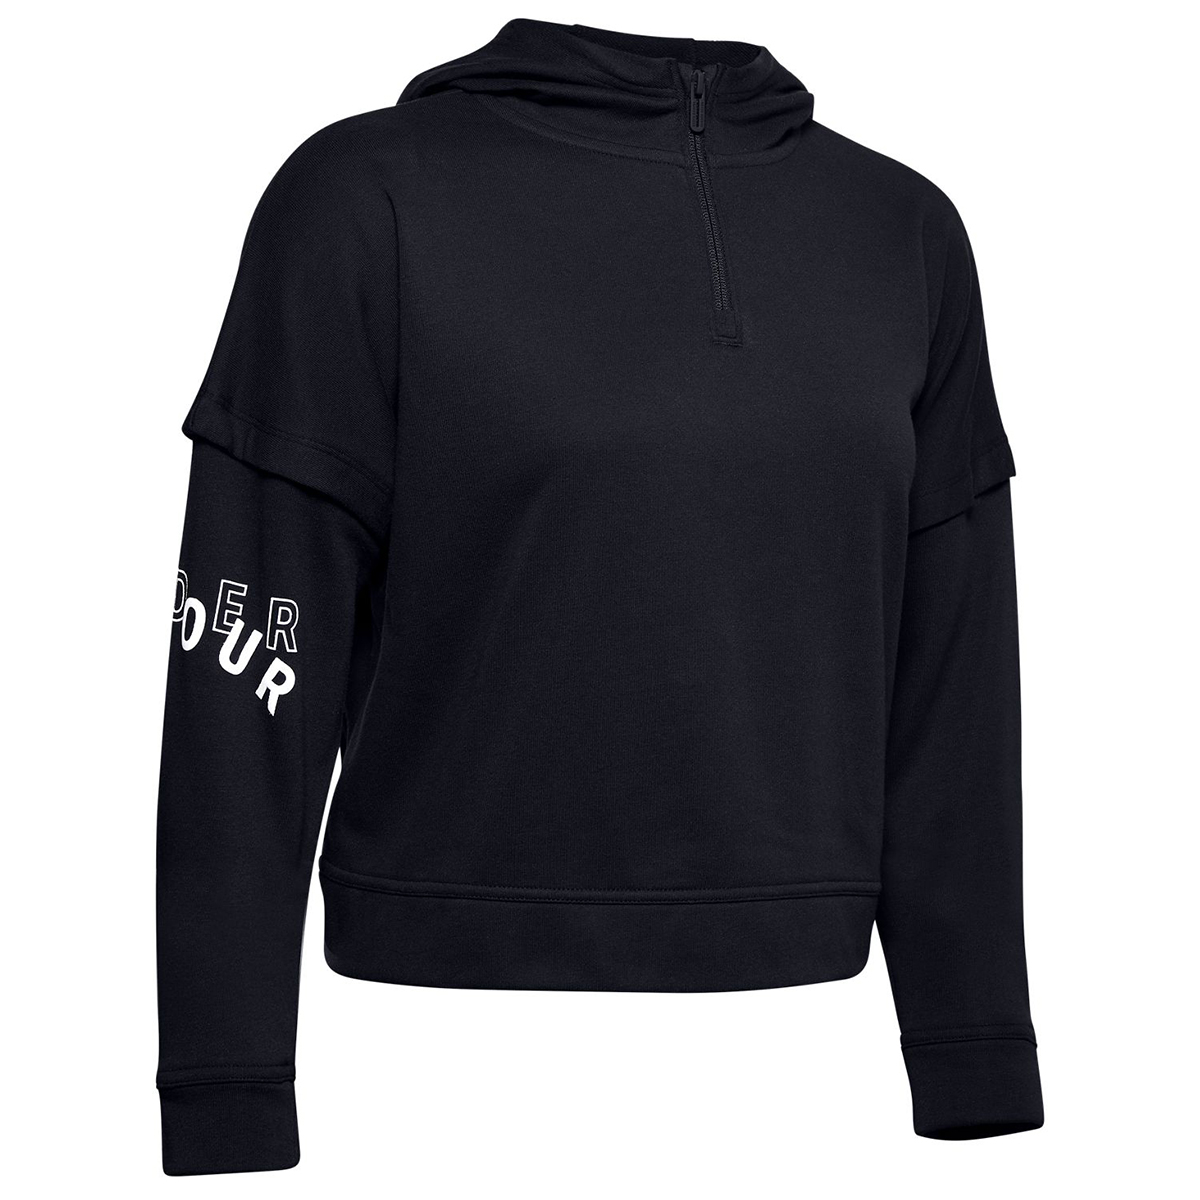 Under Armour Women's Ua Rival Terry Hoodie - Black, M